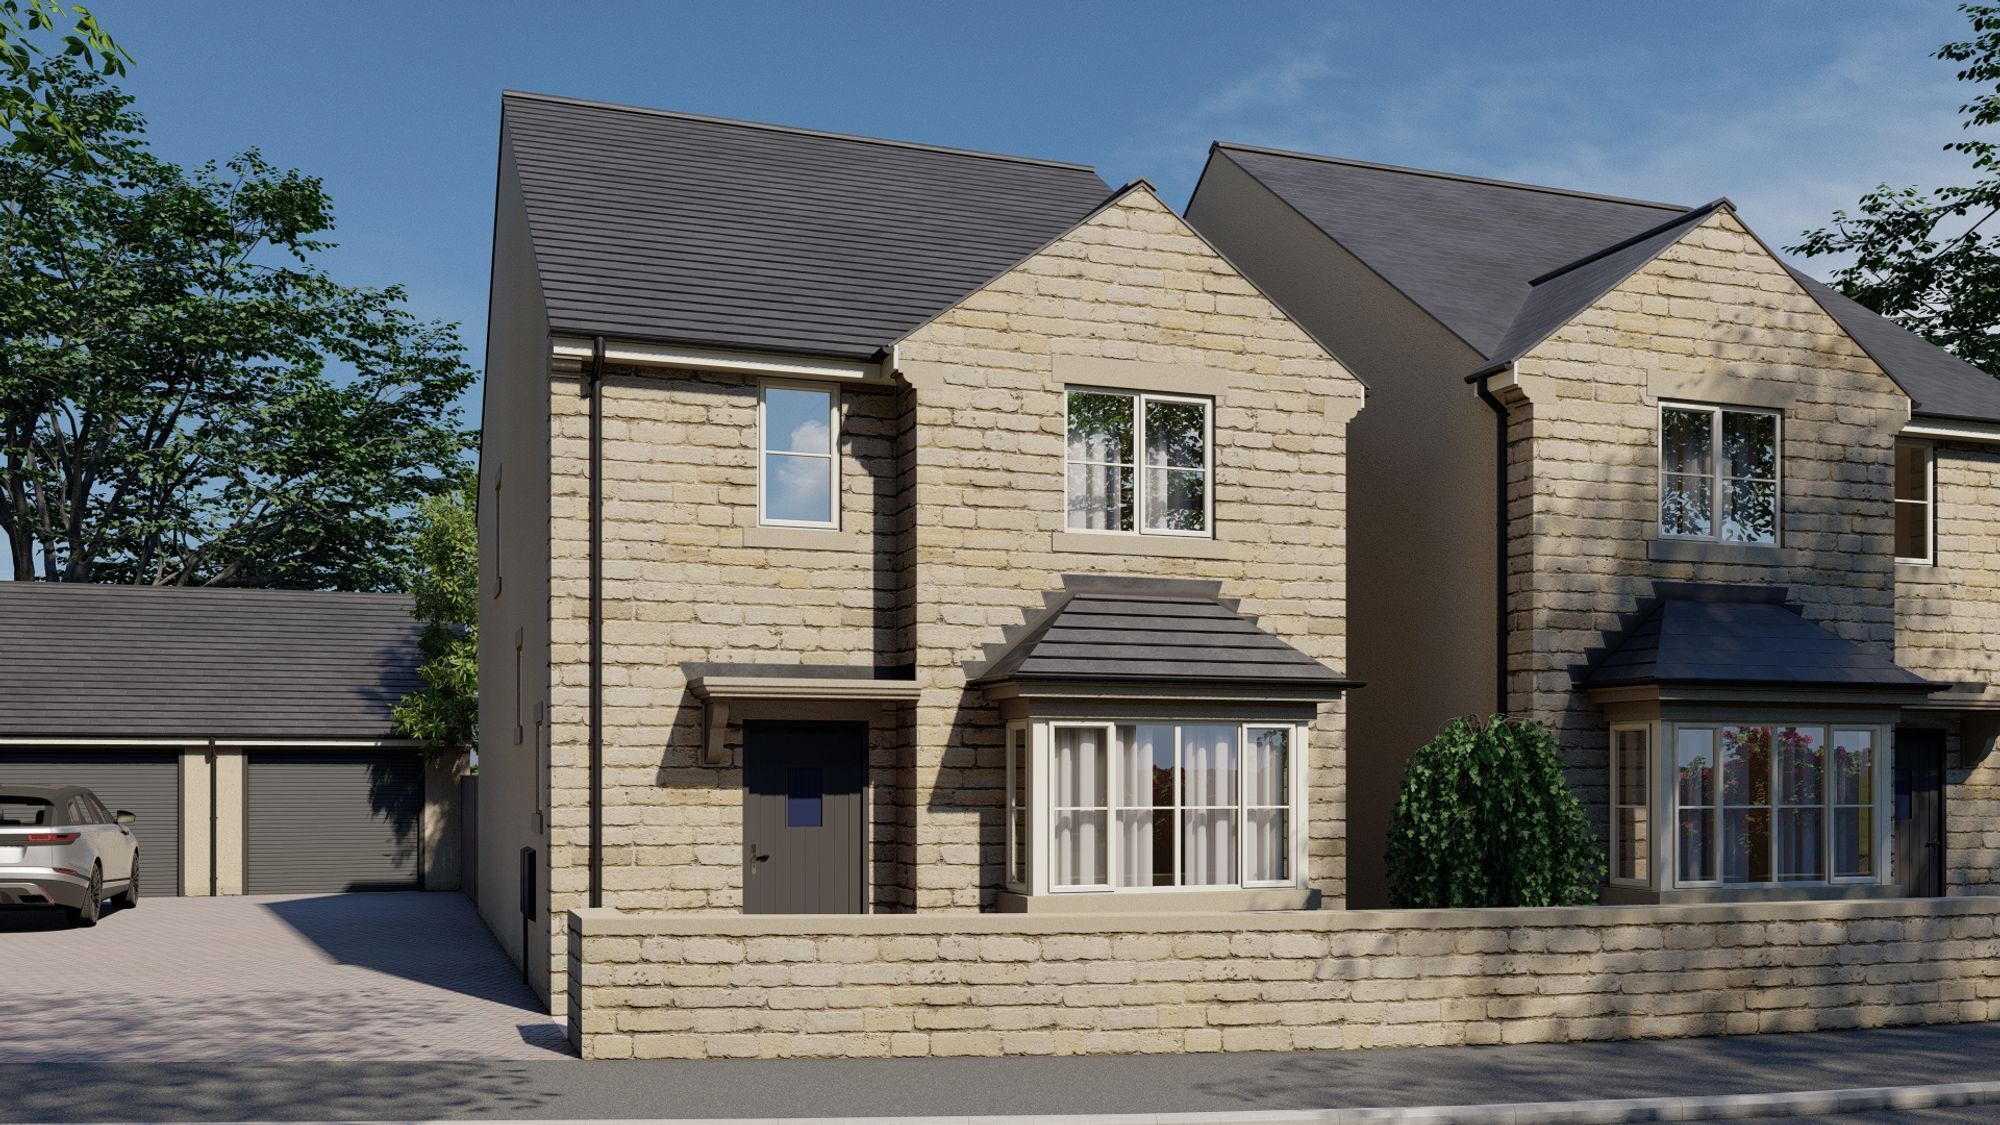 Property photo 1 of 6. The Petworth - Artist Impression